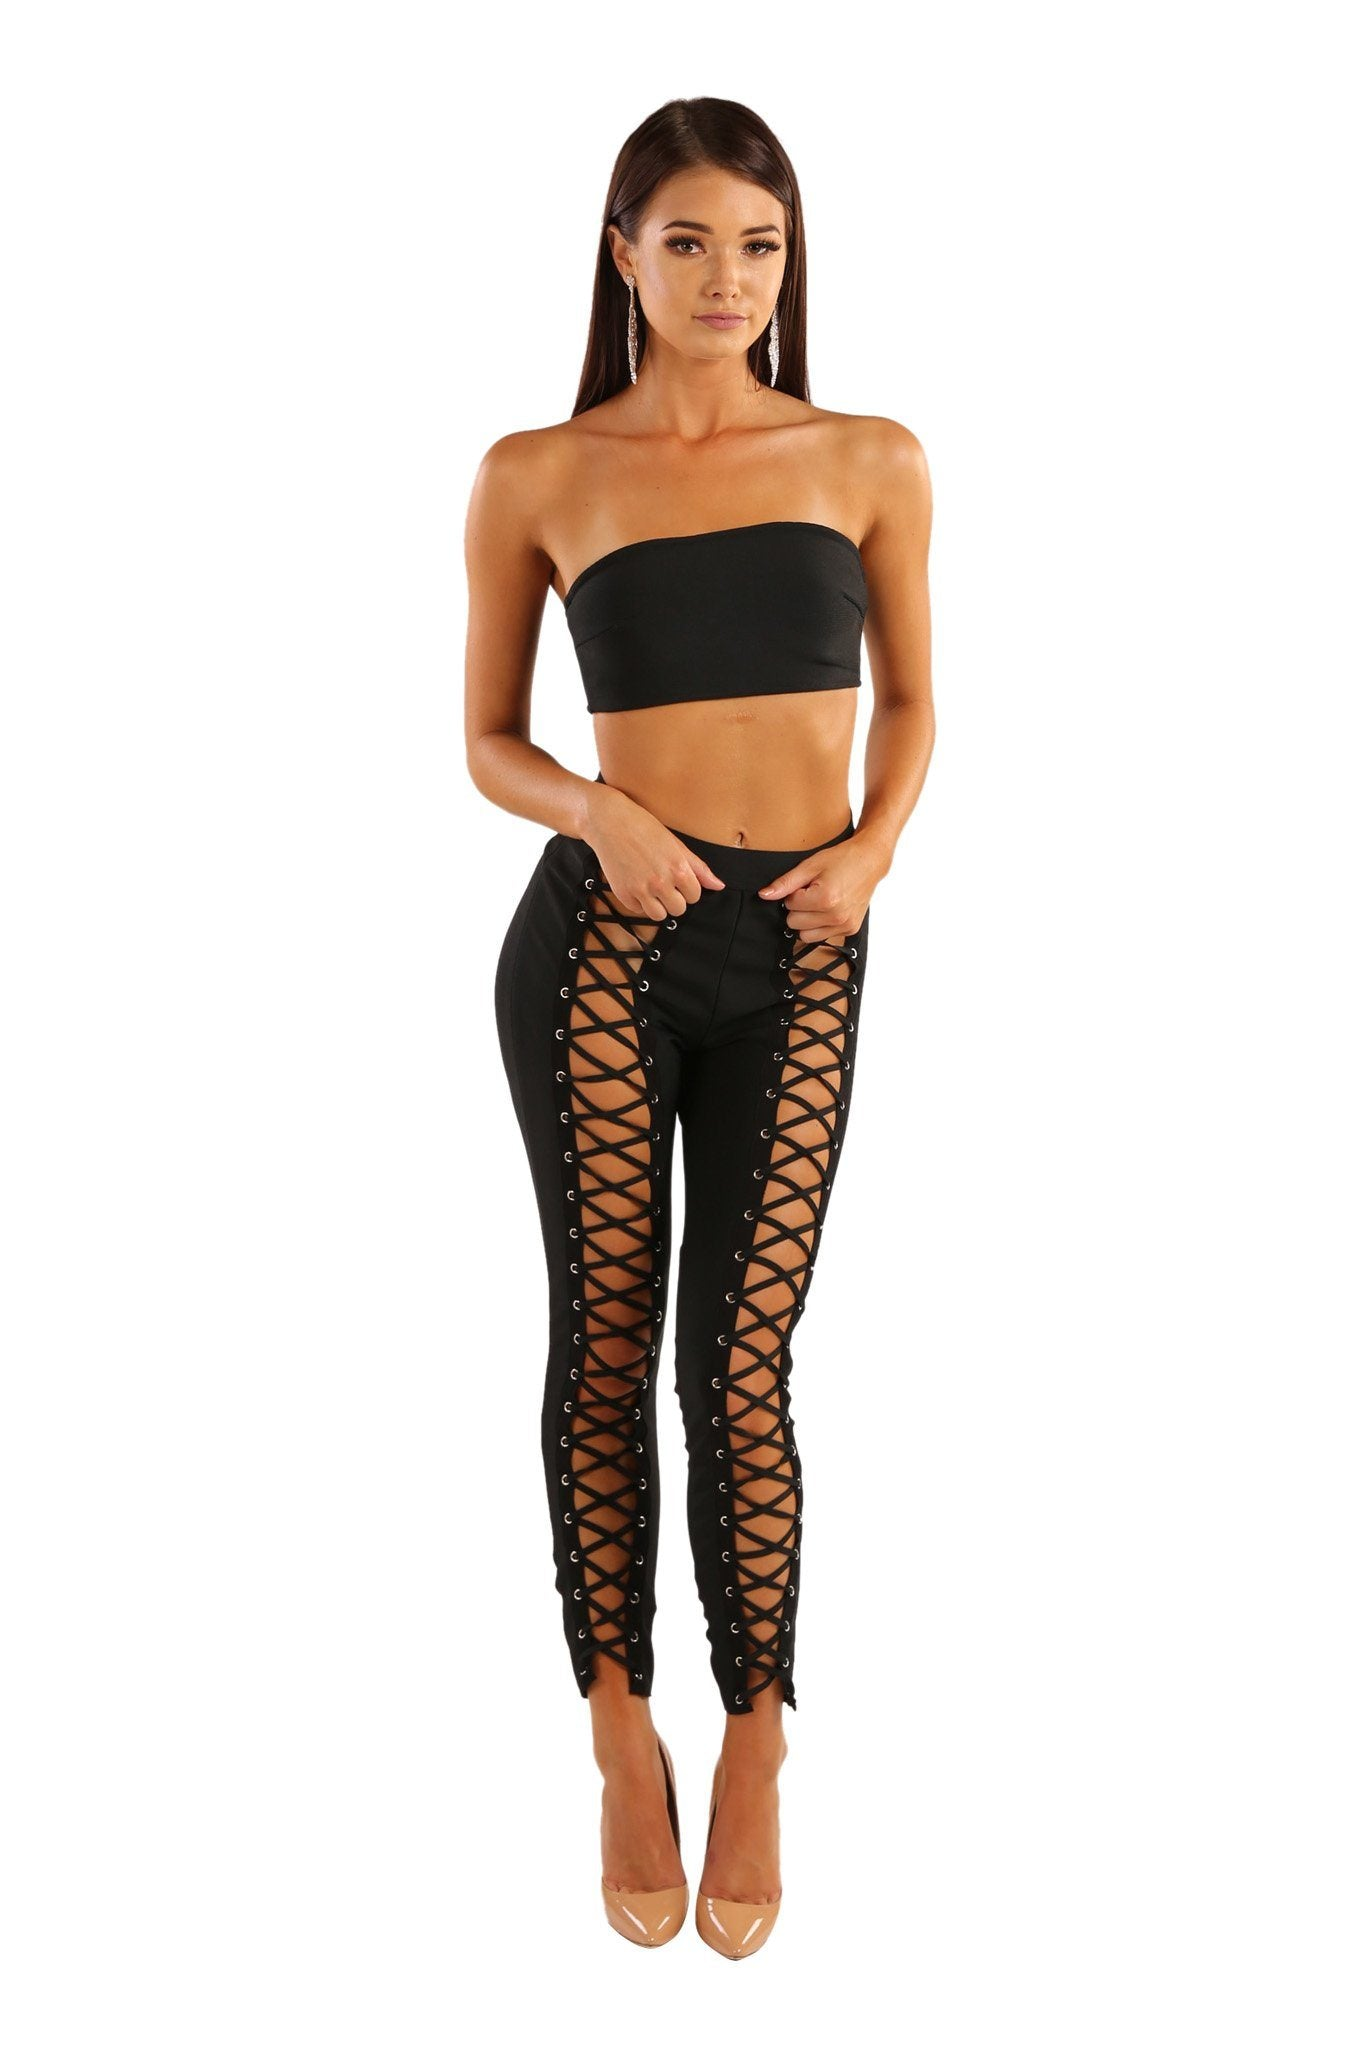 Black two piece bandage matching set including a bandeau bandage top and bandage leggings with lace-up design